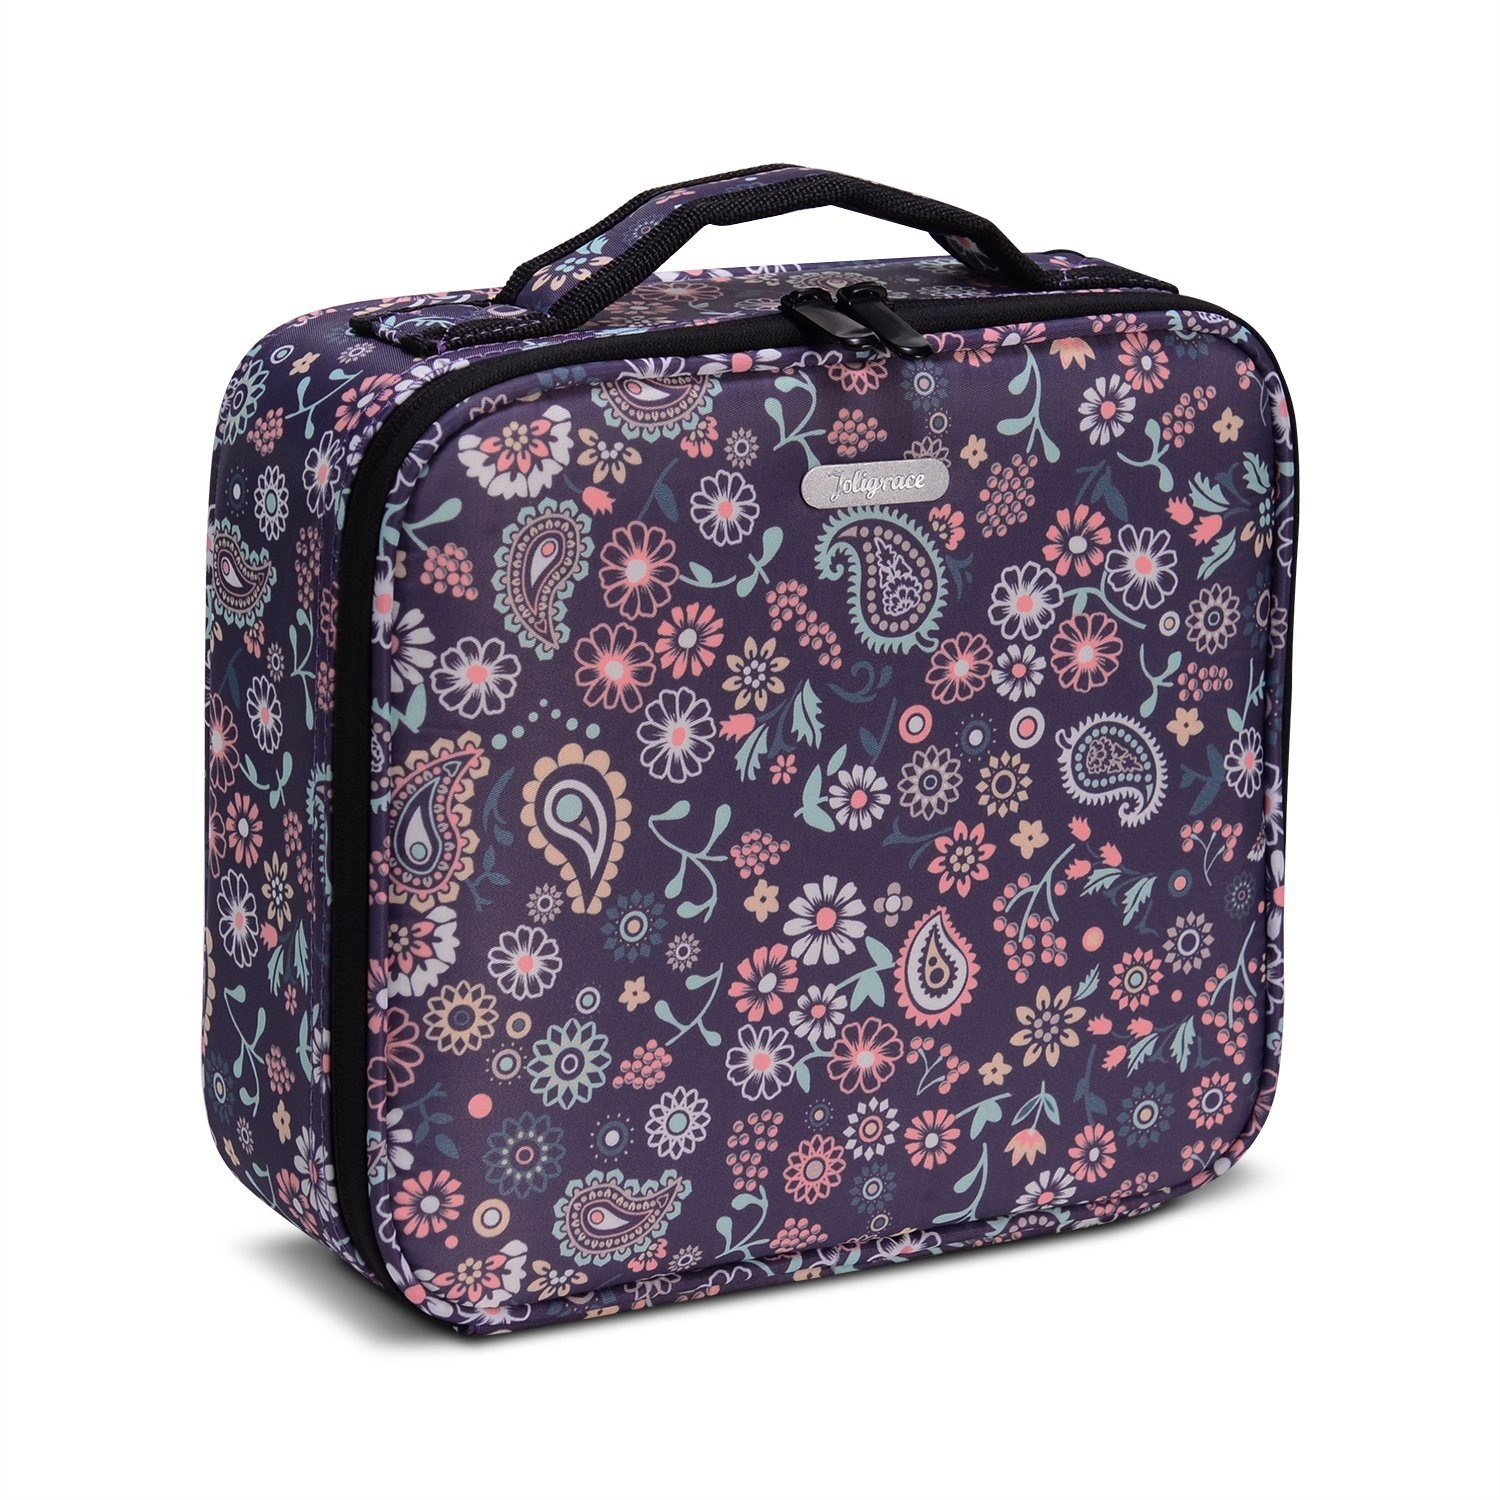 e3b9500aba54 Joligrace Large Oxford Fabric Professional Makeup Bag With Removable Back  Strap Cosmetic Case Beauty Box Hairdressing Tools Organiser Storage Box ...